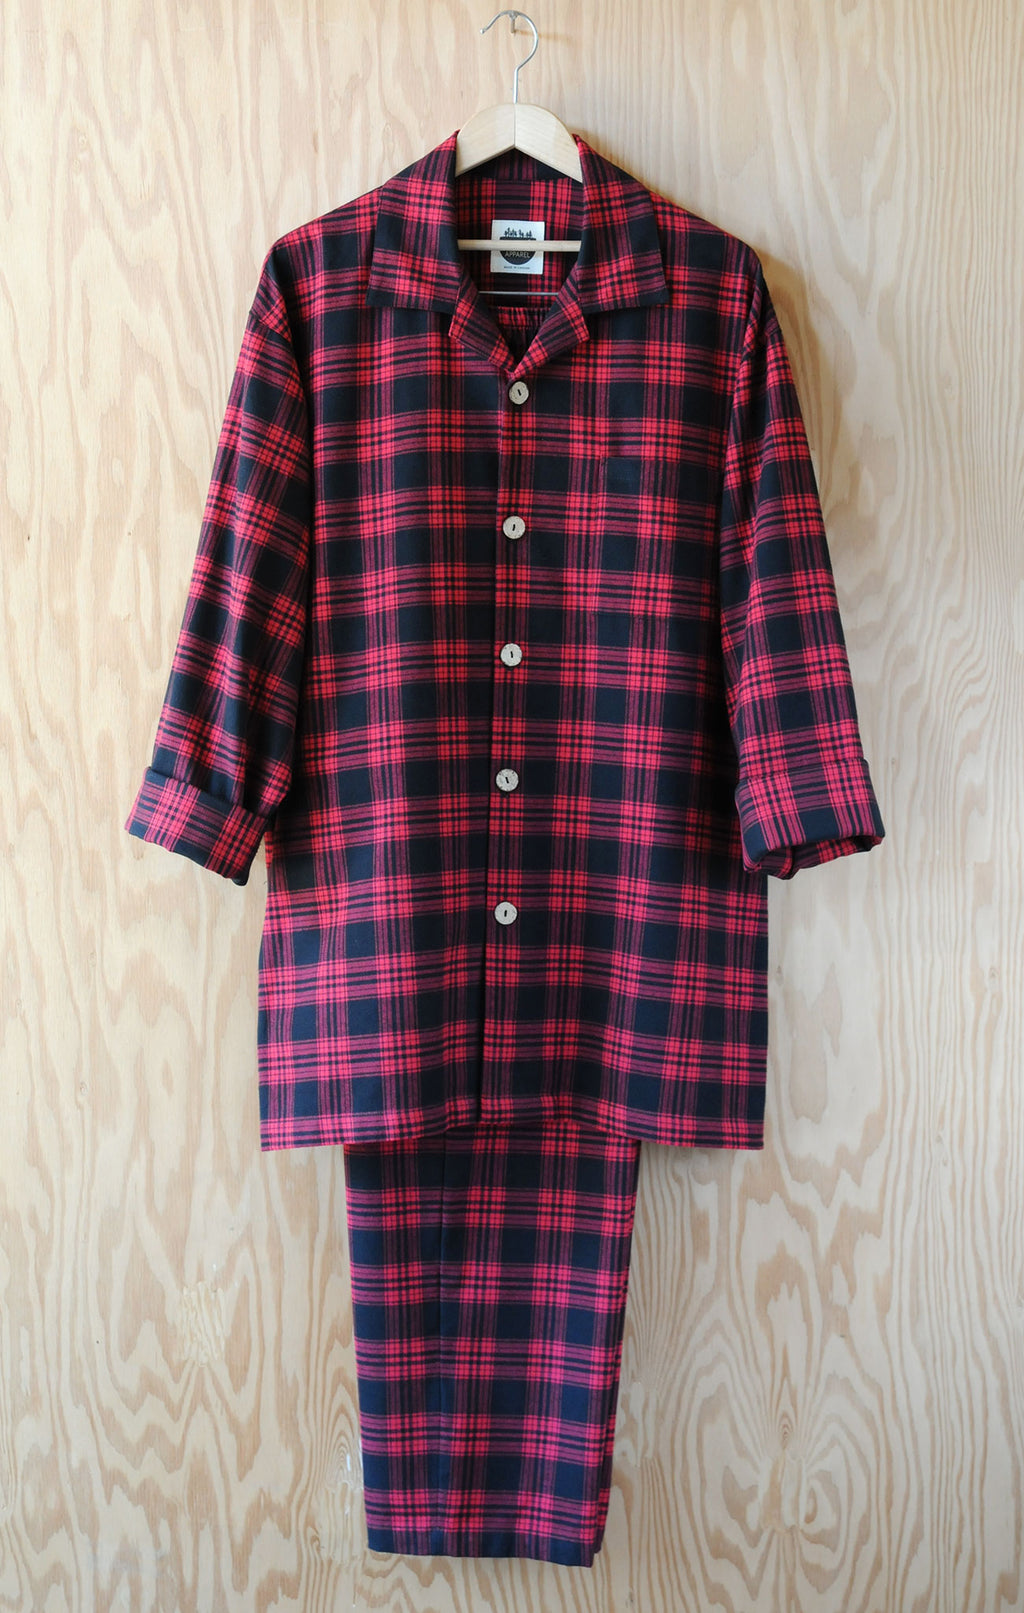 Men's Pajama Set - Heritage Plaid Red Flannel